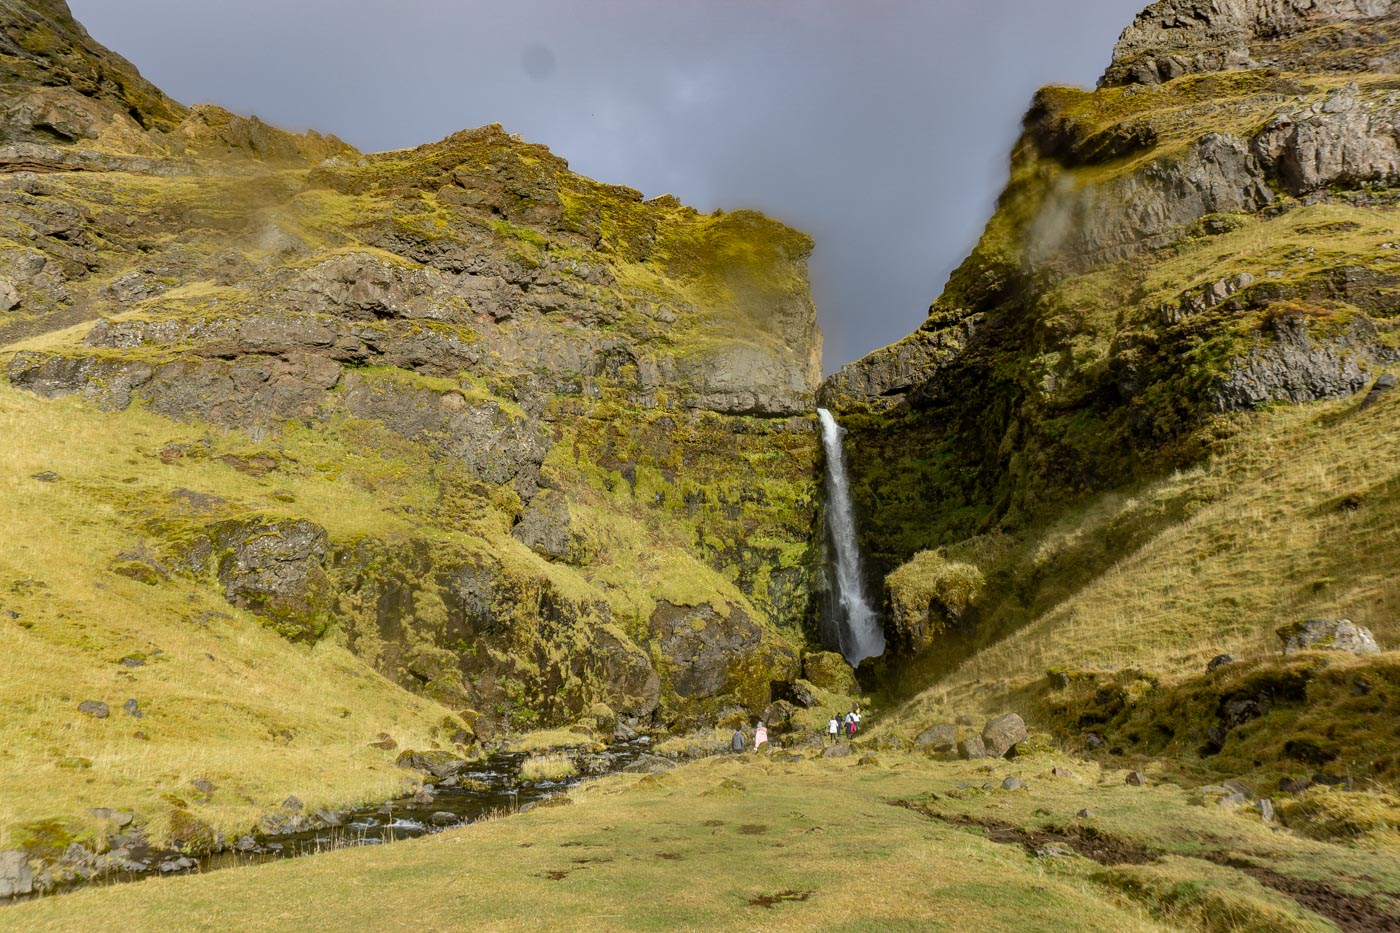 Irafoss, a private waterfall on the south coast of Iceland only accessible by NiceTravel